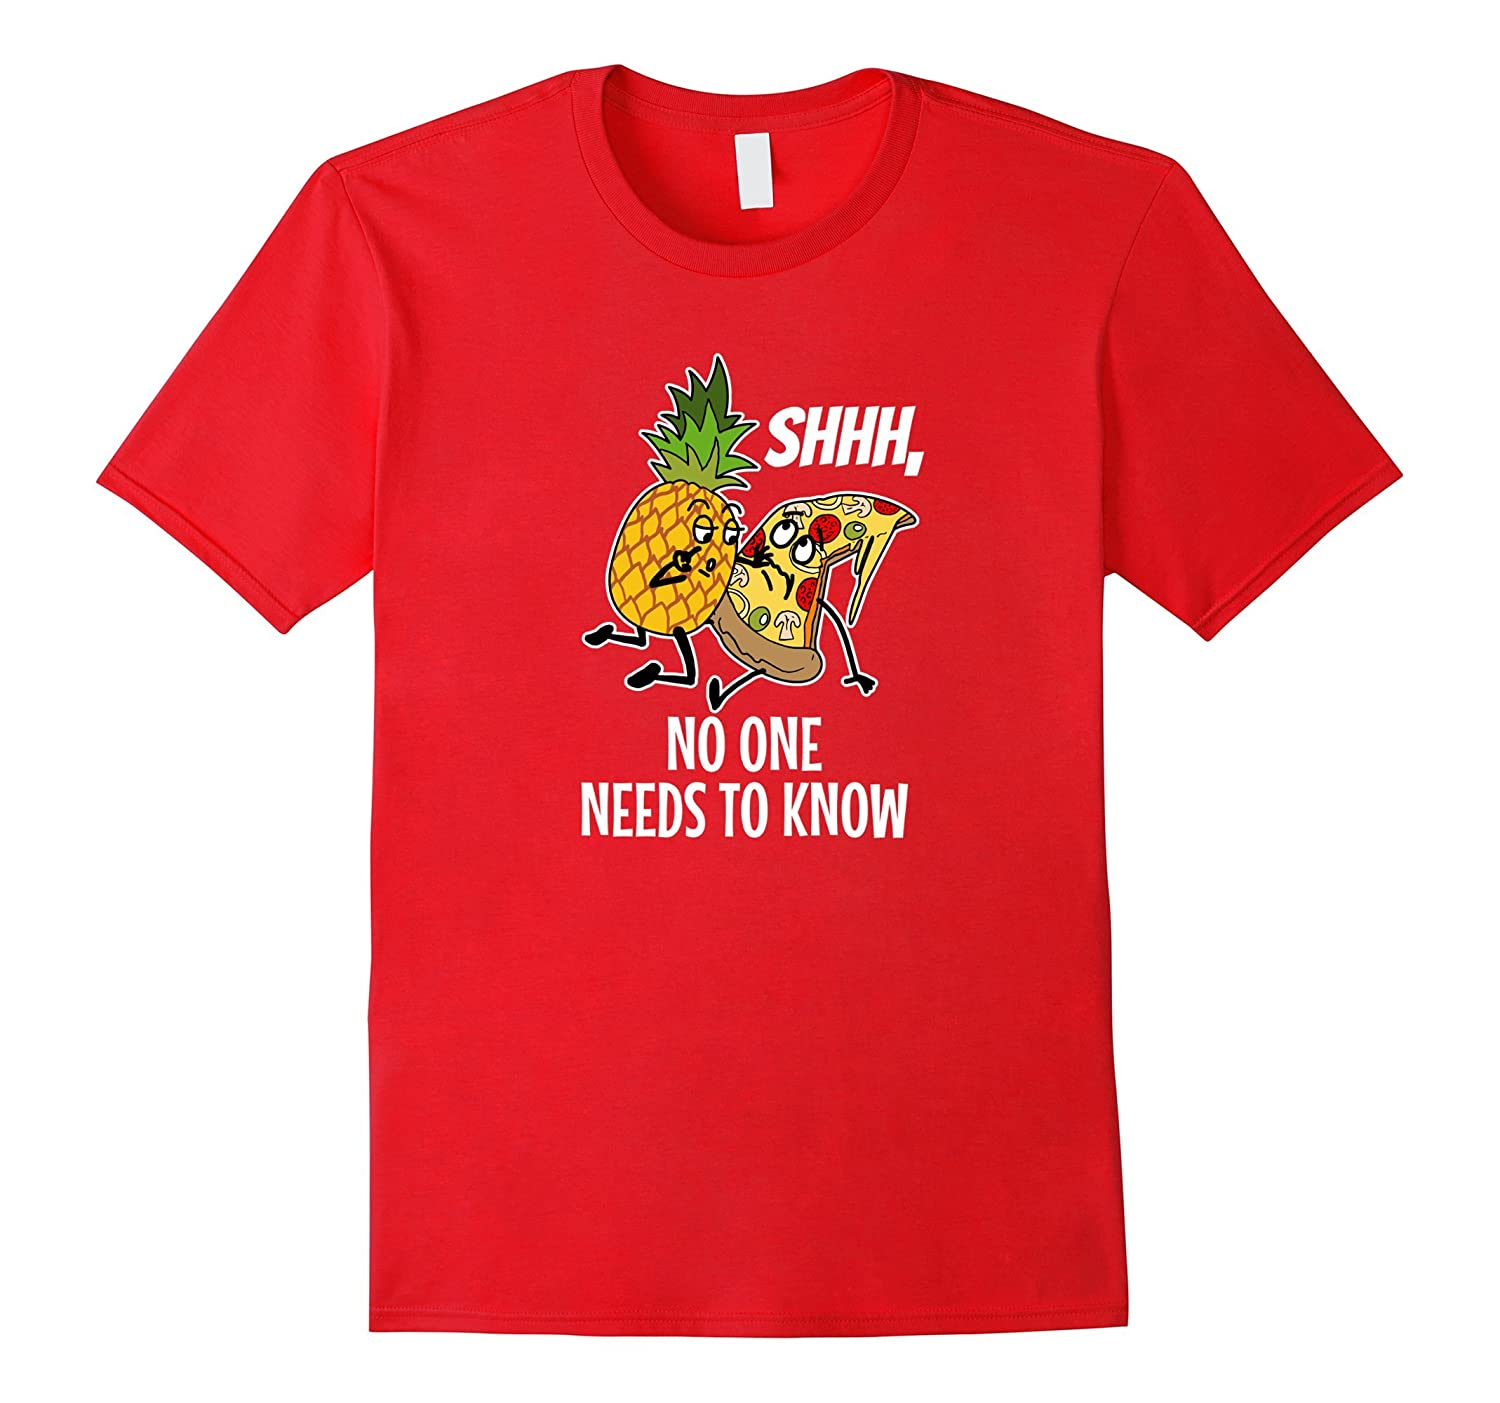 Pineapple Pizza Shirt  Shhh No One Needs To Know T-Shirt-Vaci